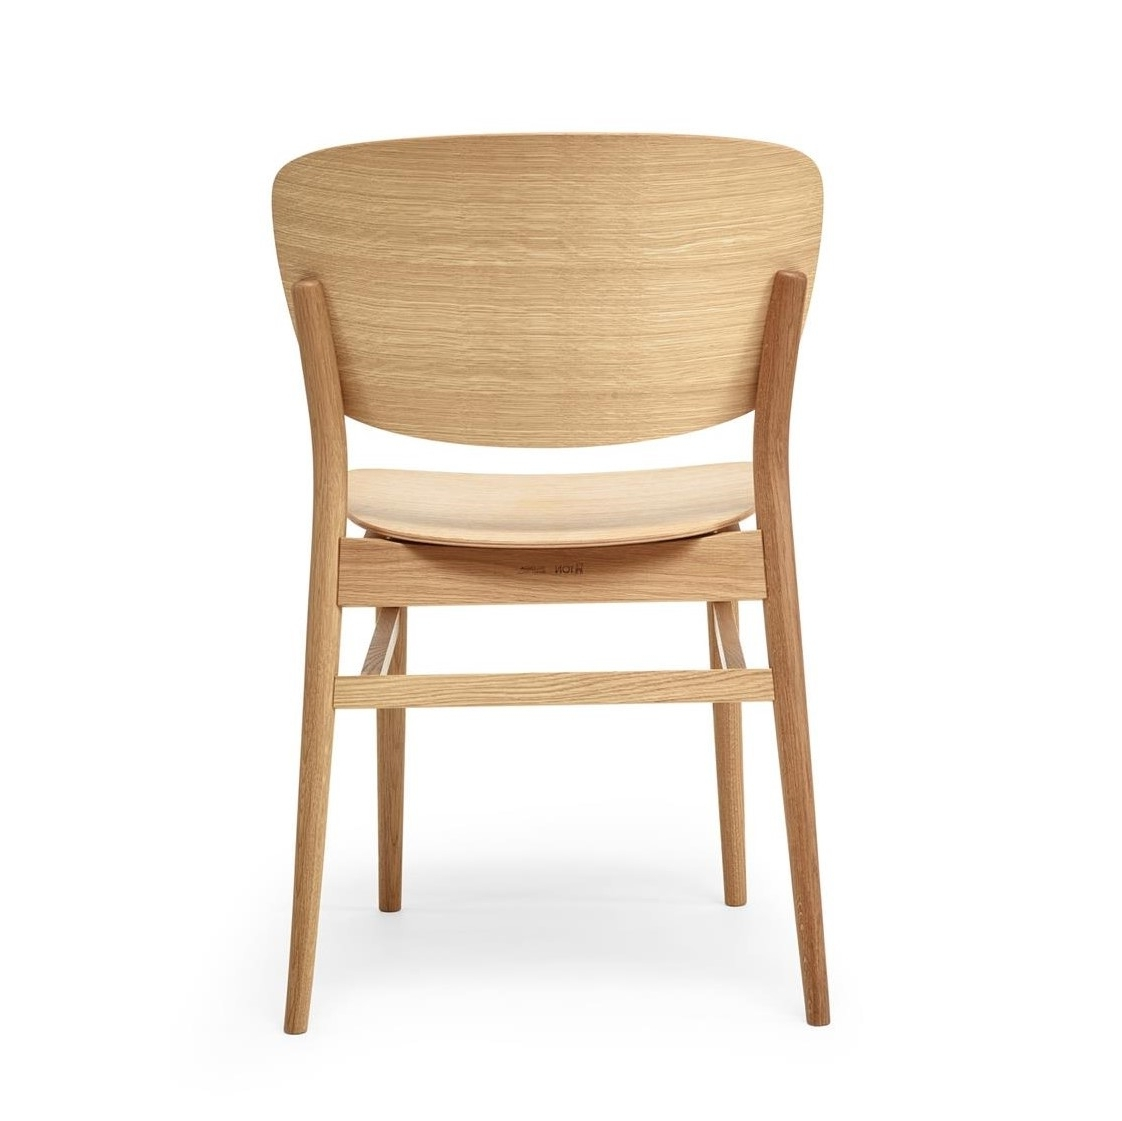 Valencia Side Chairs With Upholstered Seat For Best And Newest Valencia Side Chair, Wooden – Telegraph Contract Furniture (Gallery 7 of 20)